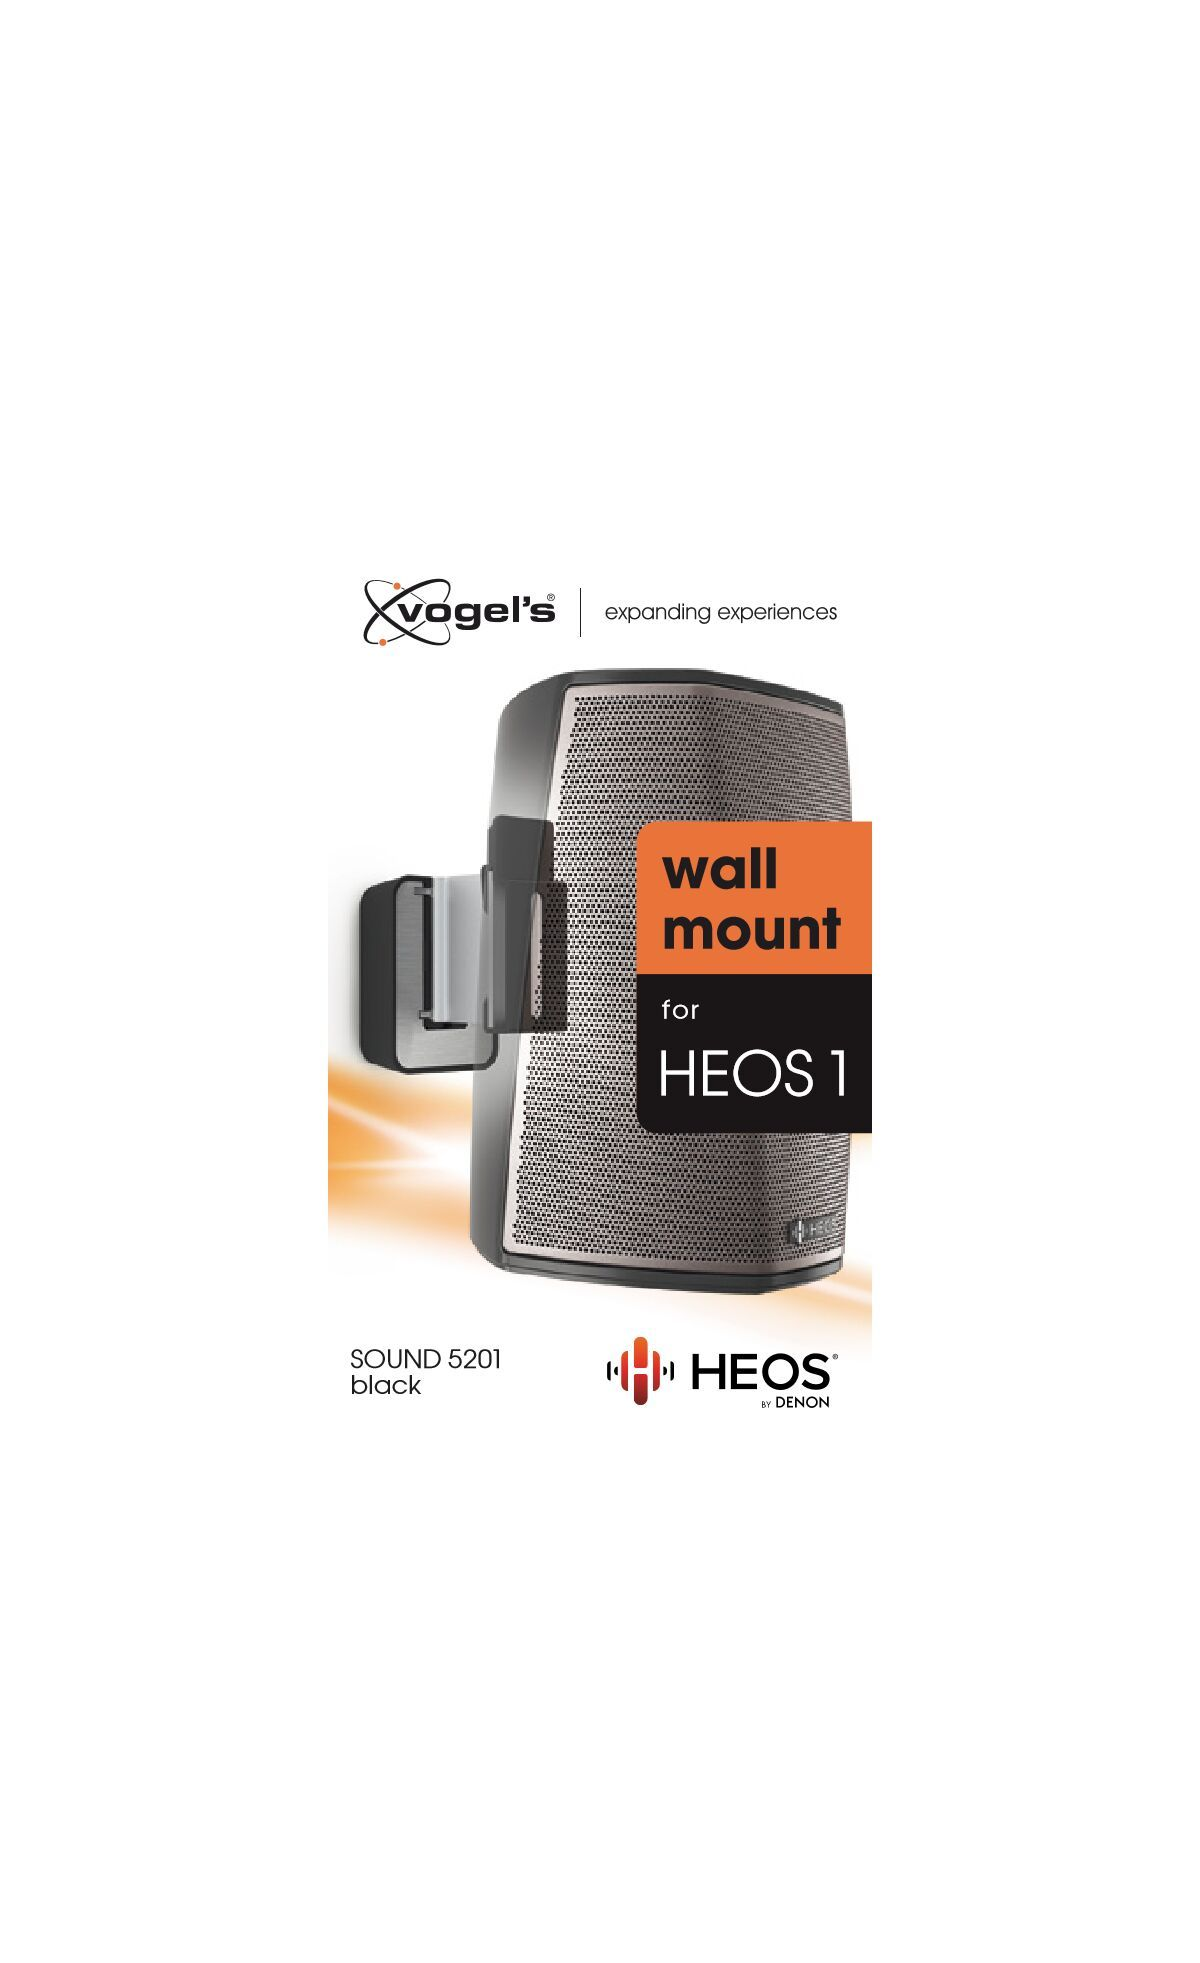 Vogel's SOUND 5201 Speaker Wall Mount for Denon HEOS 1 (black) - Packaging front